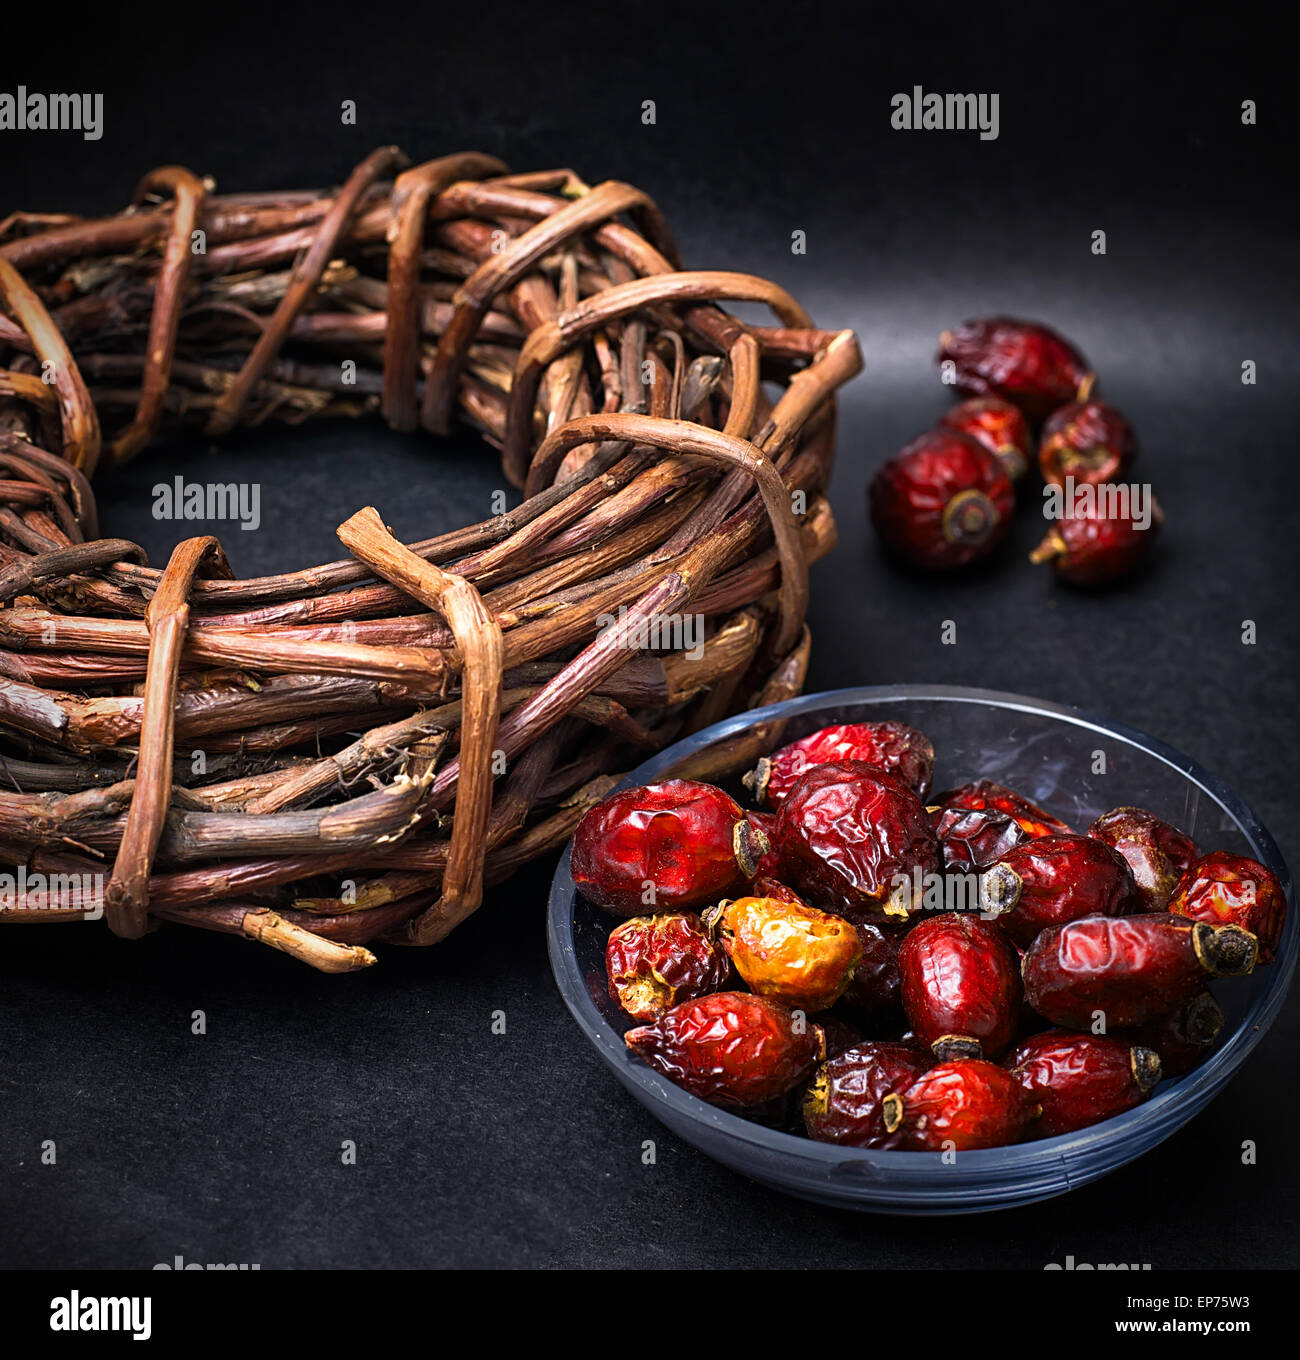 rose in white bowl on background licorice root bound in coil - Stock Image